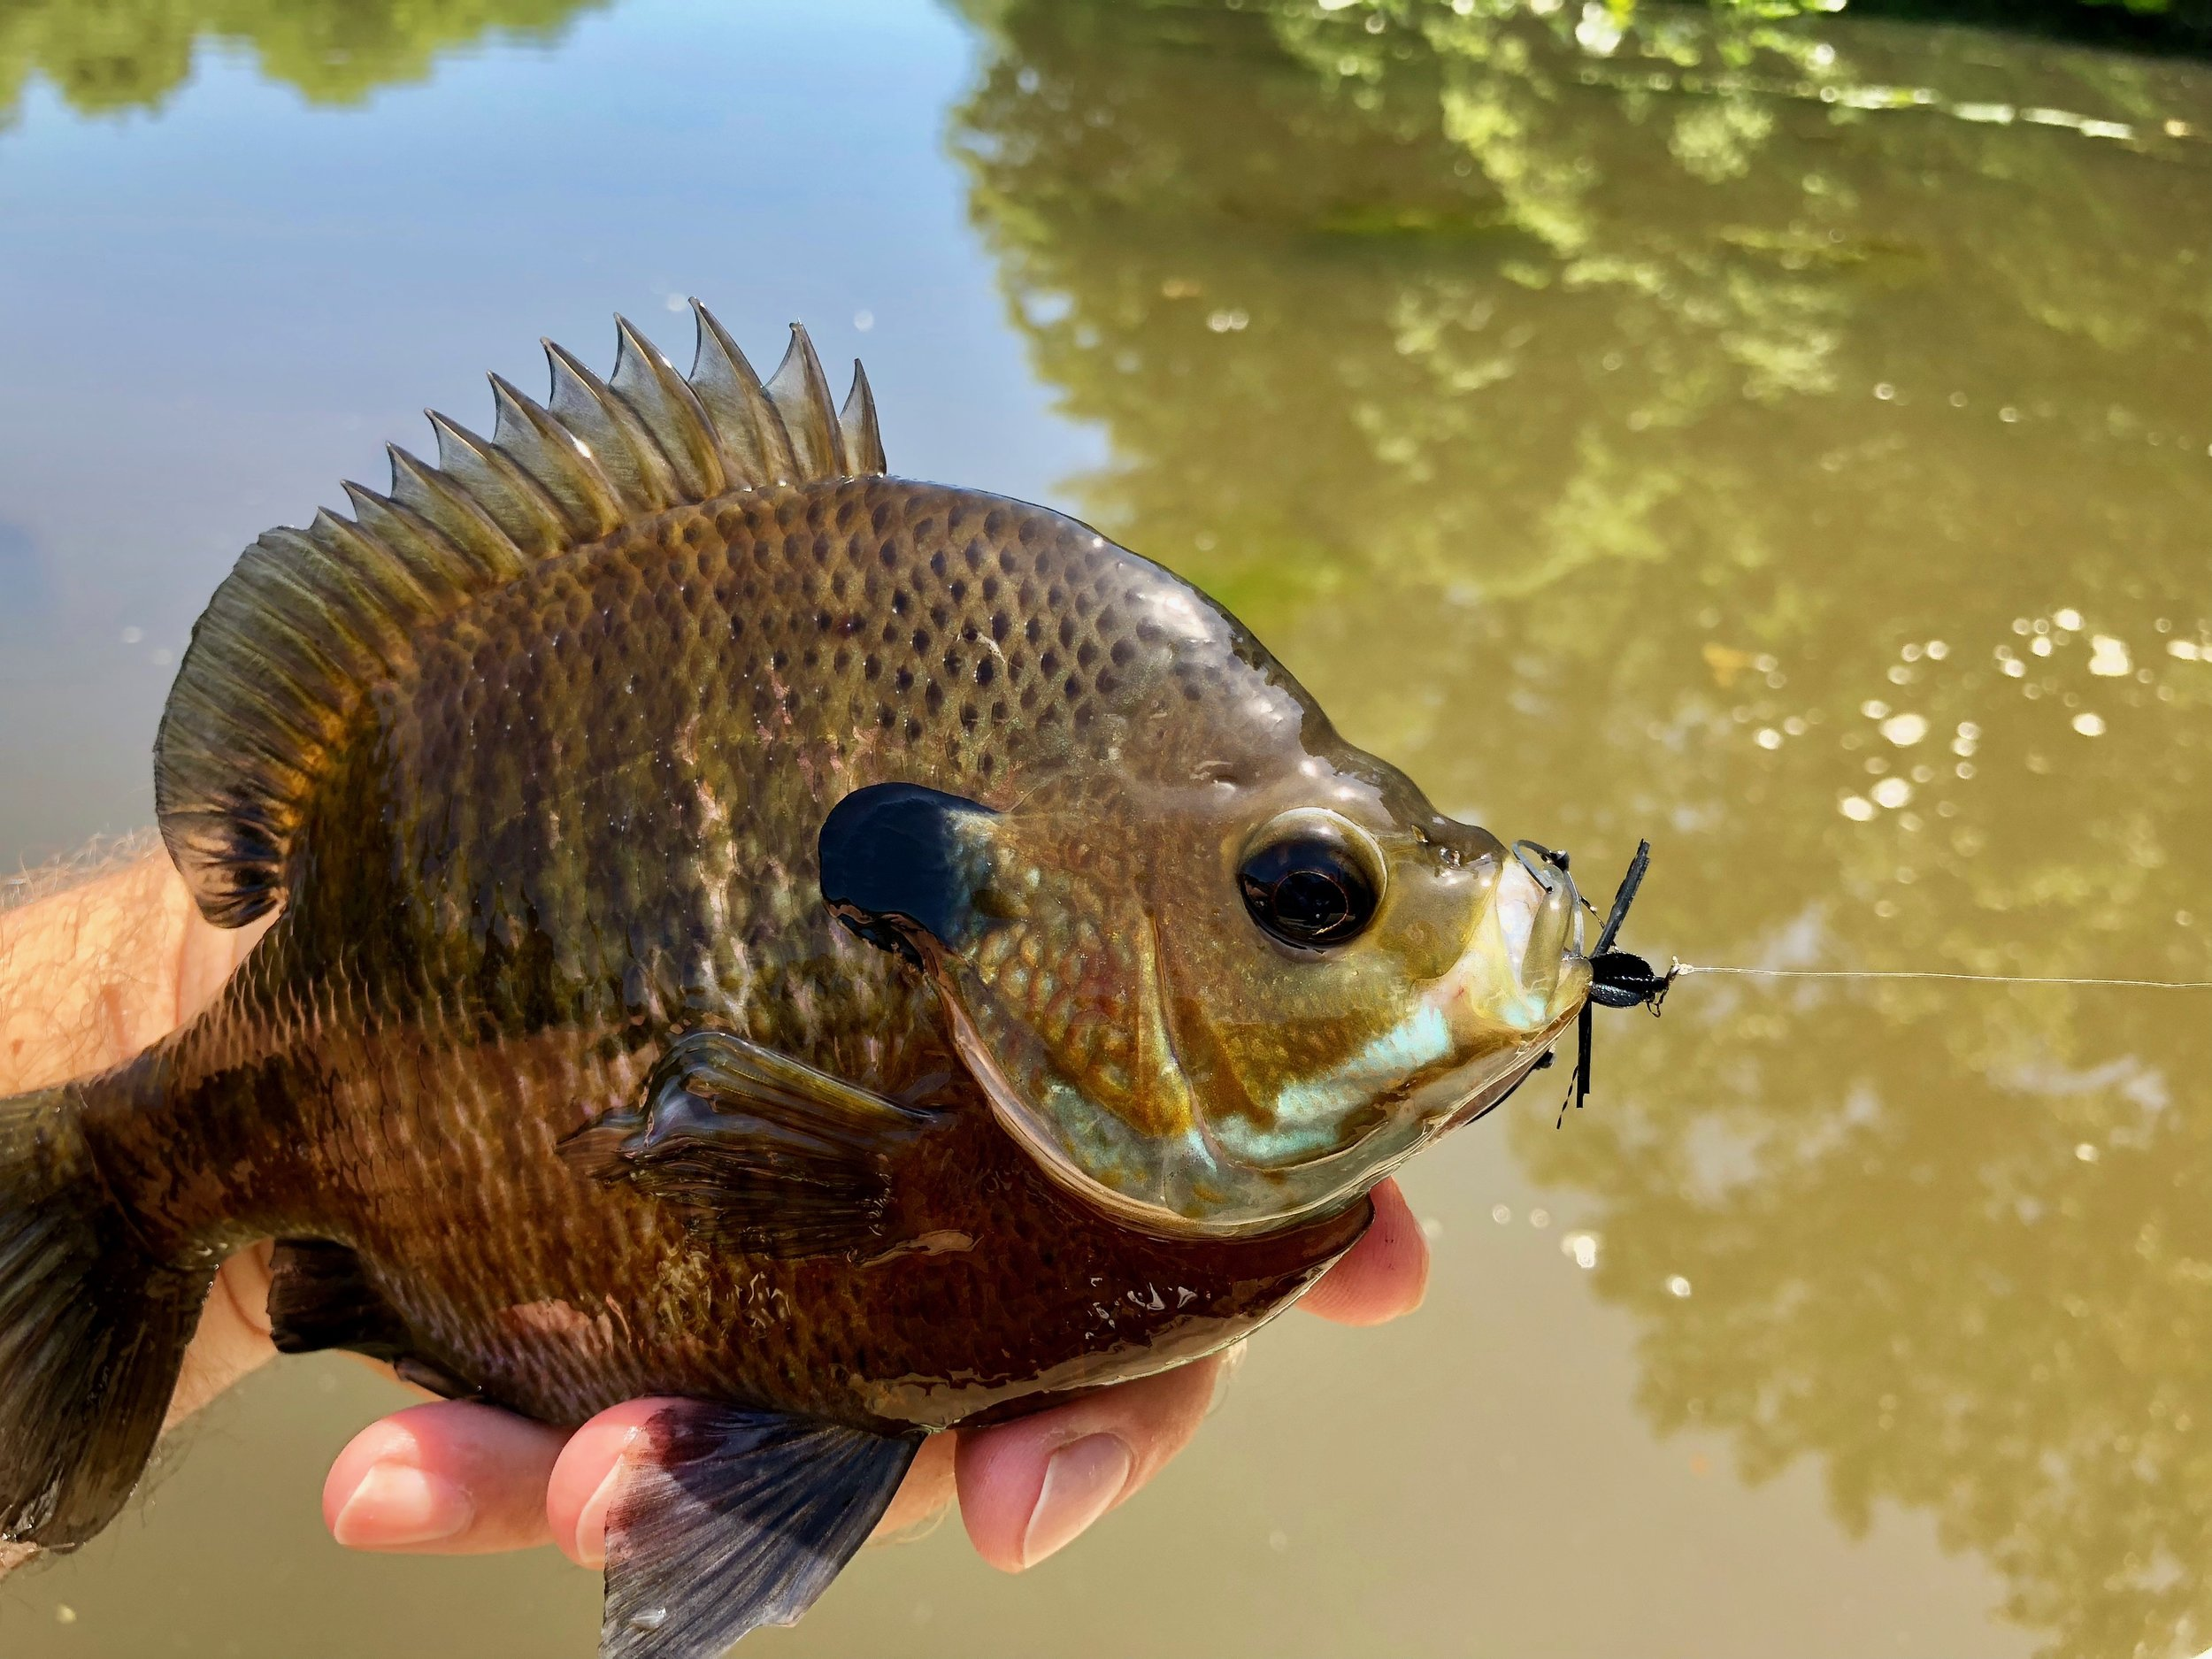 Another good sized blugill with a mouthful of ugly